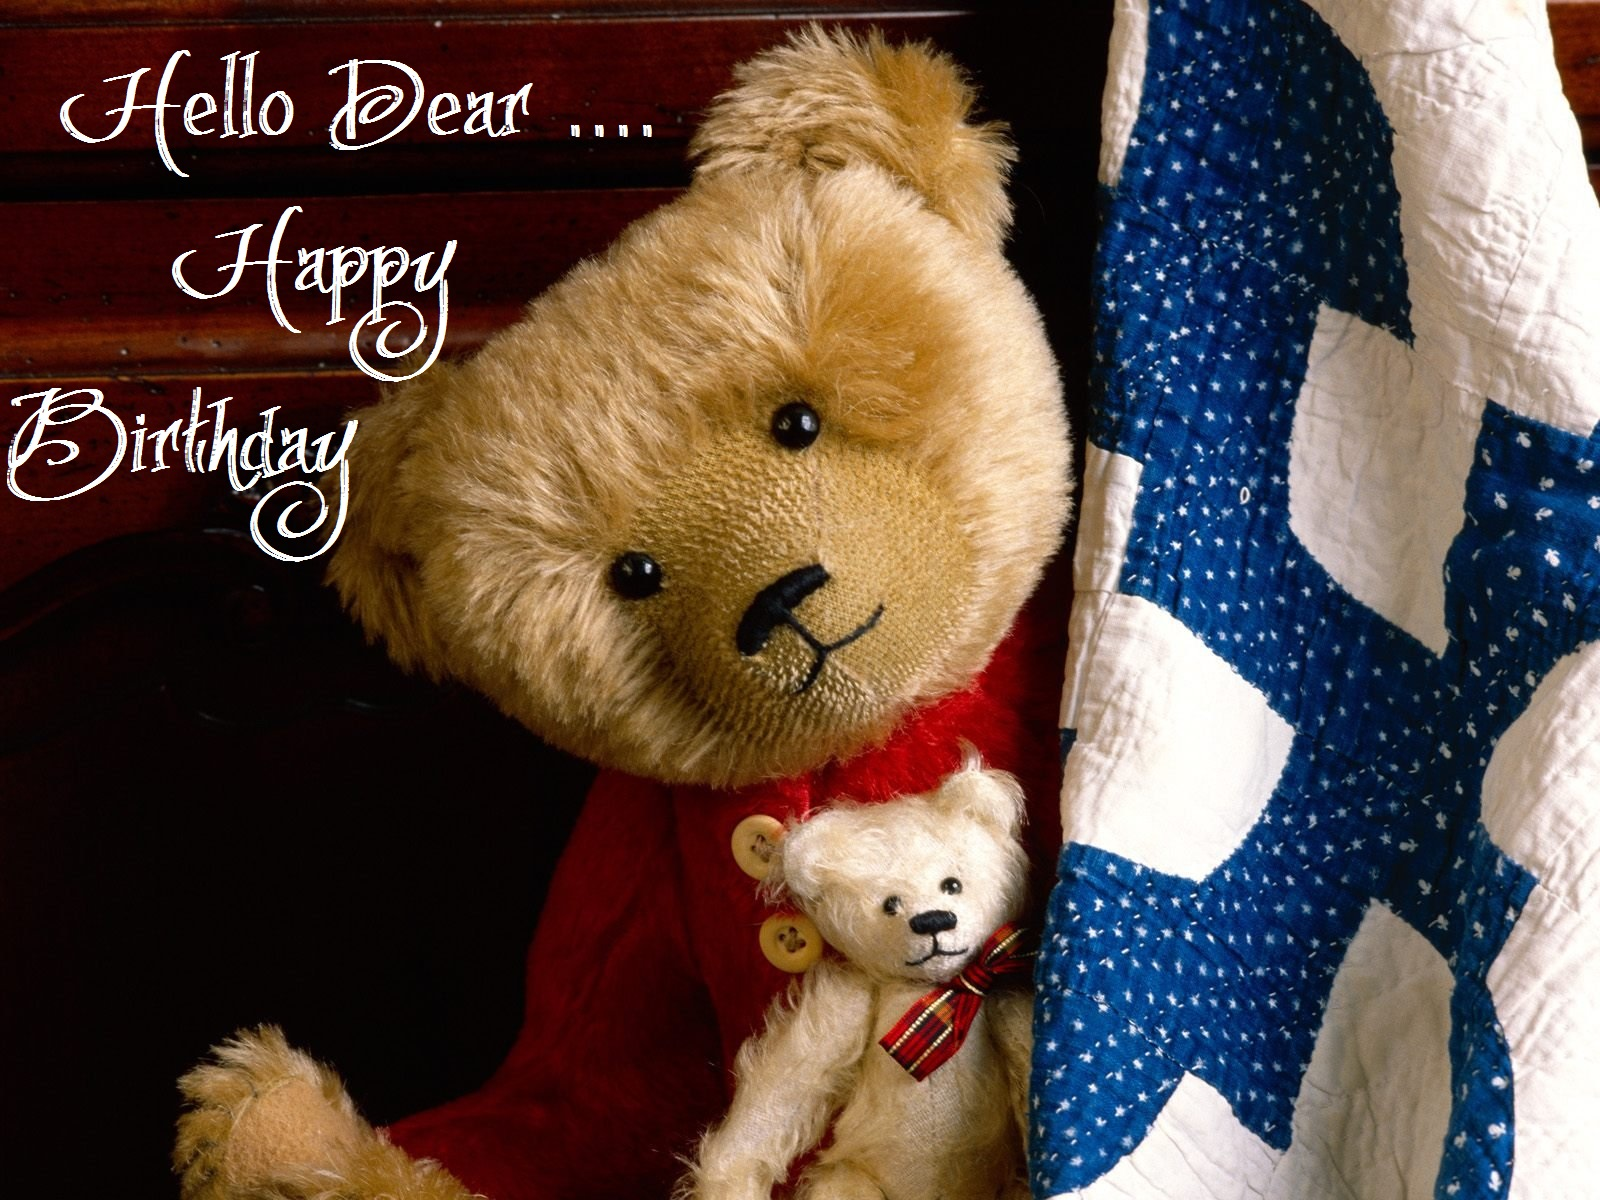 Specially Best Teddy Bear Gifts for Birthday Wishes   Festival Chaska 1600x1200